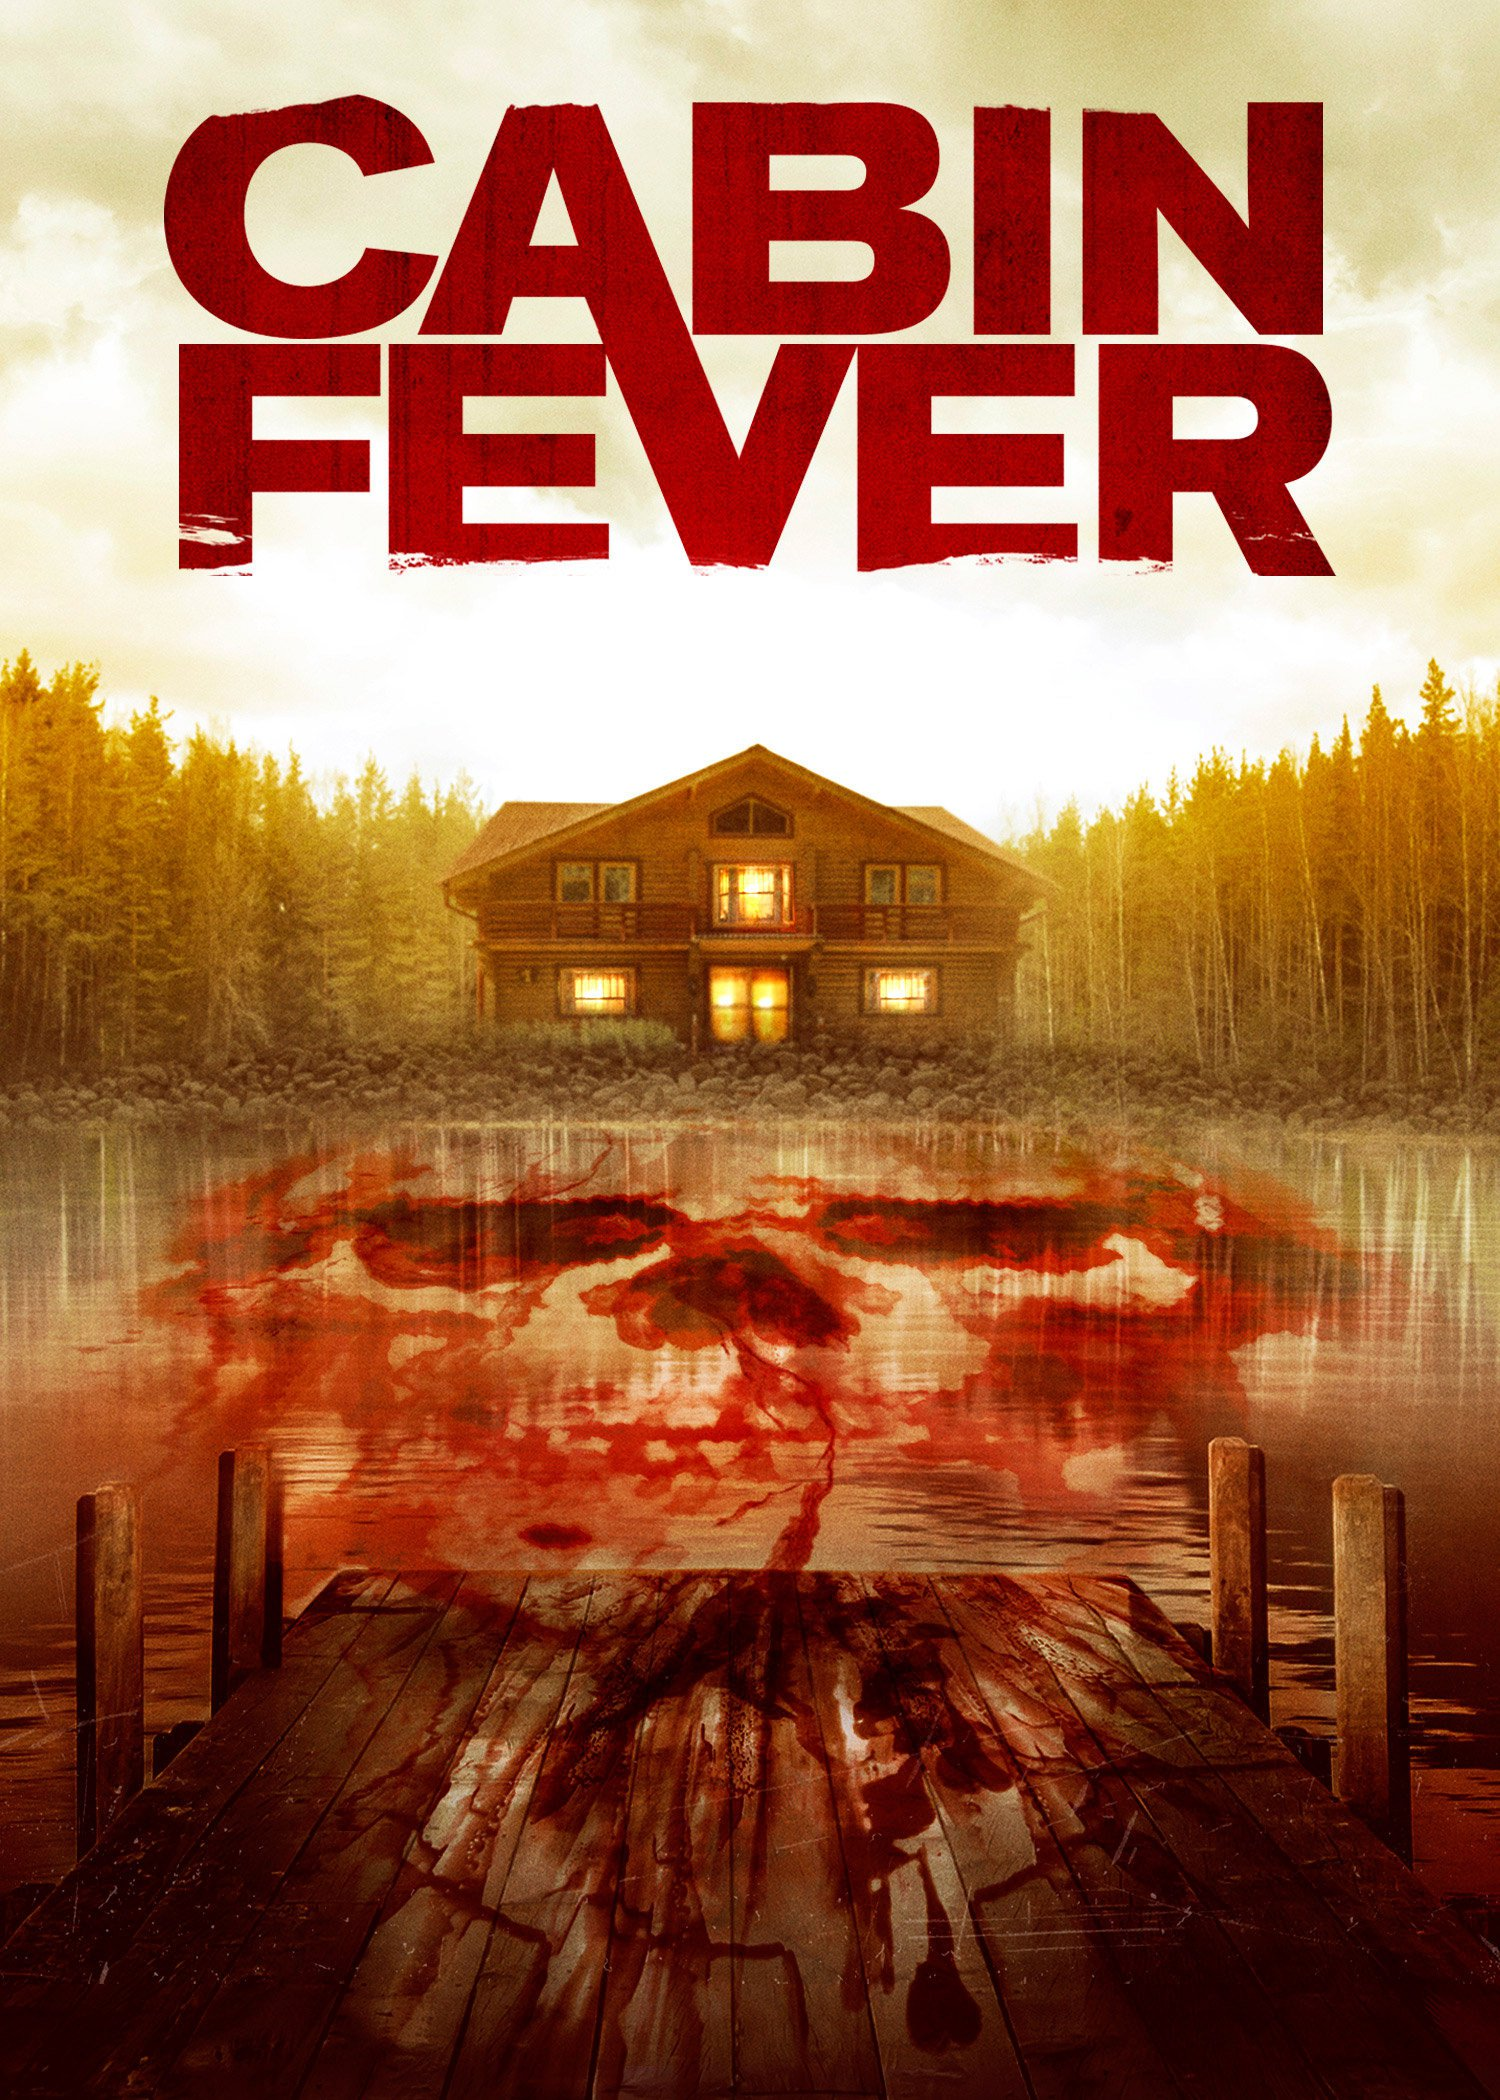 cabin fever images - photo #11